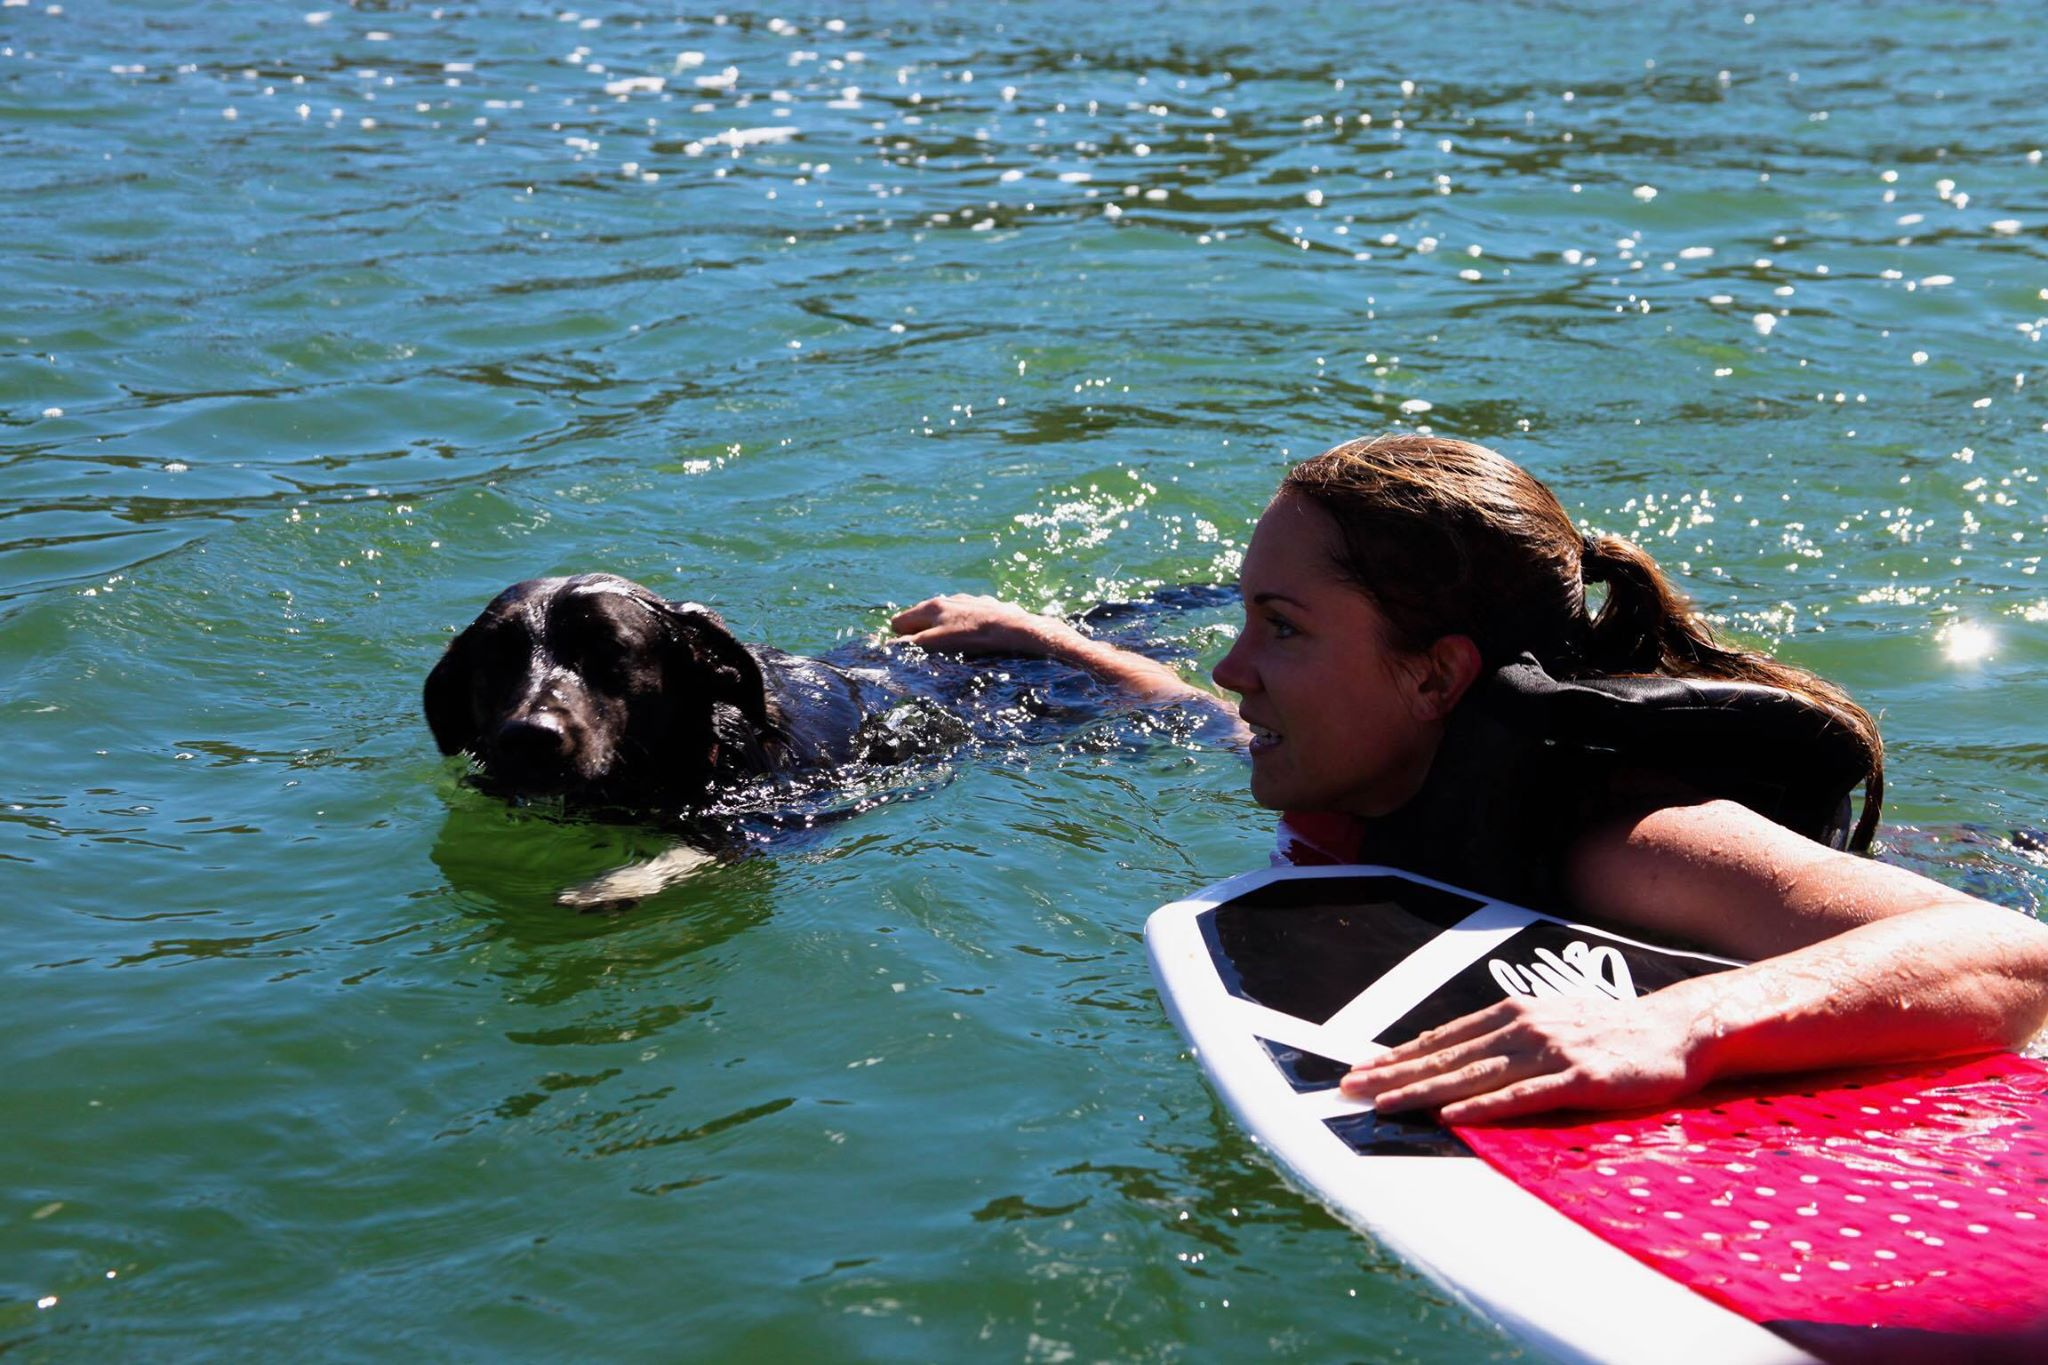 Everyone can enjoy the sun with our Motor Boat Rentals in Utah